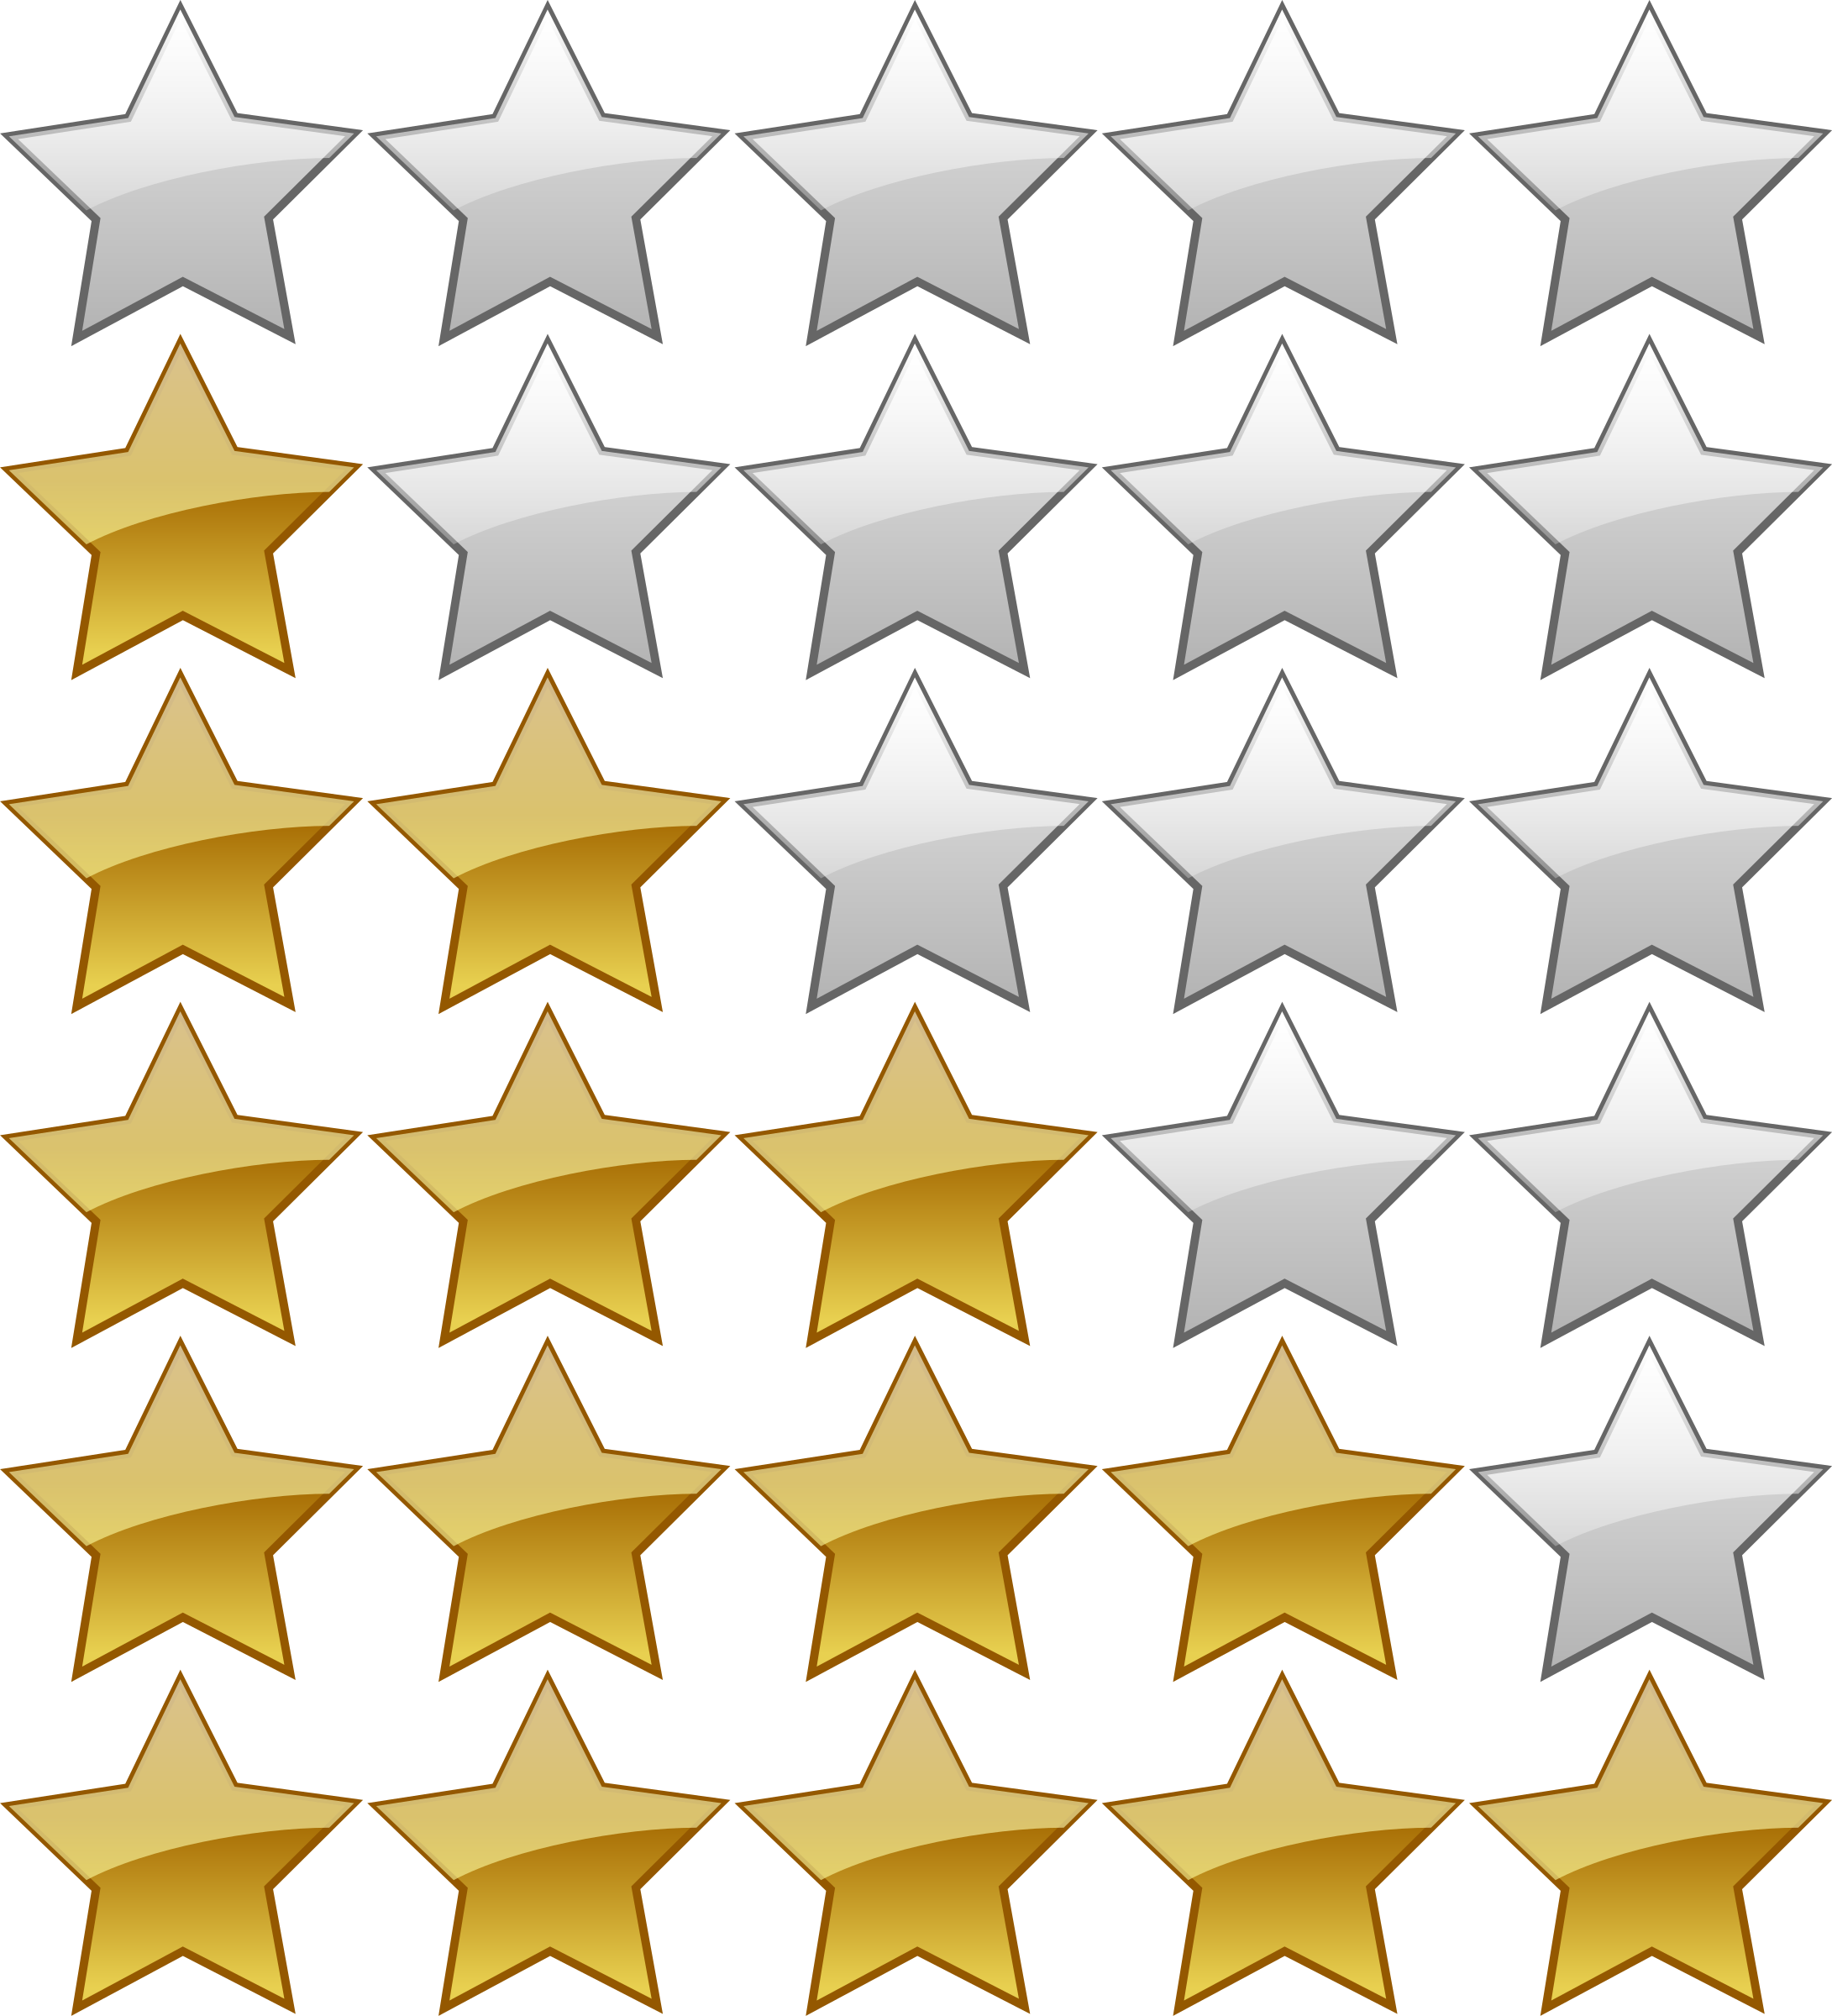 5 Star Rating System How To Attract Customers Business Reputation Ap World History